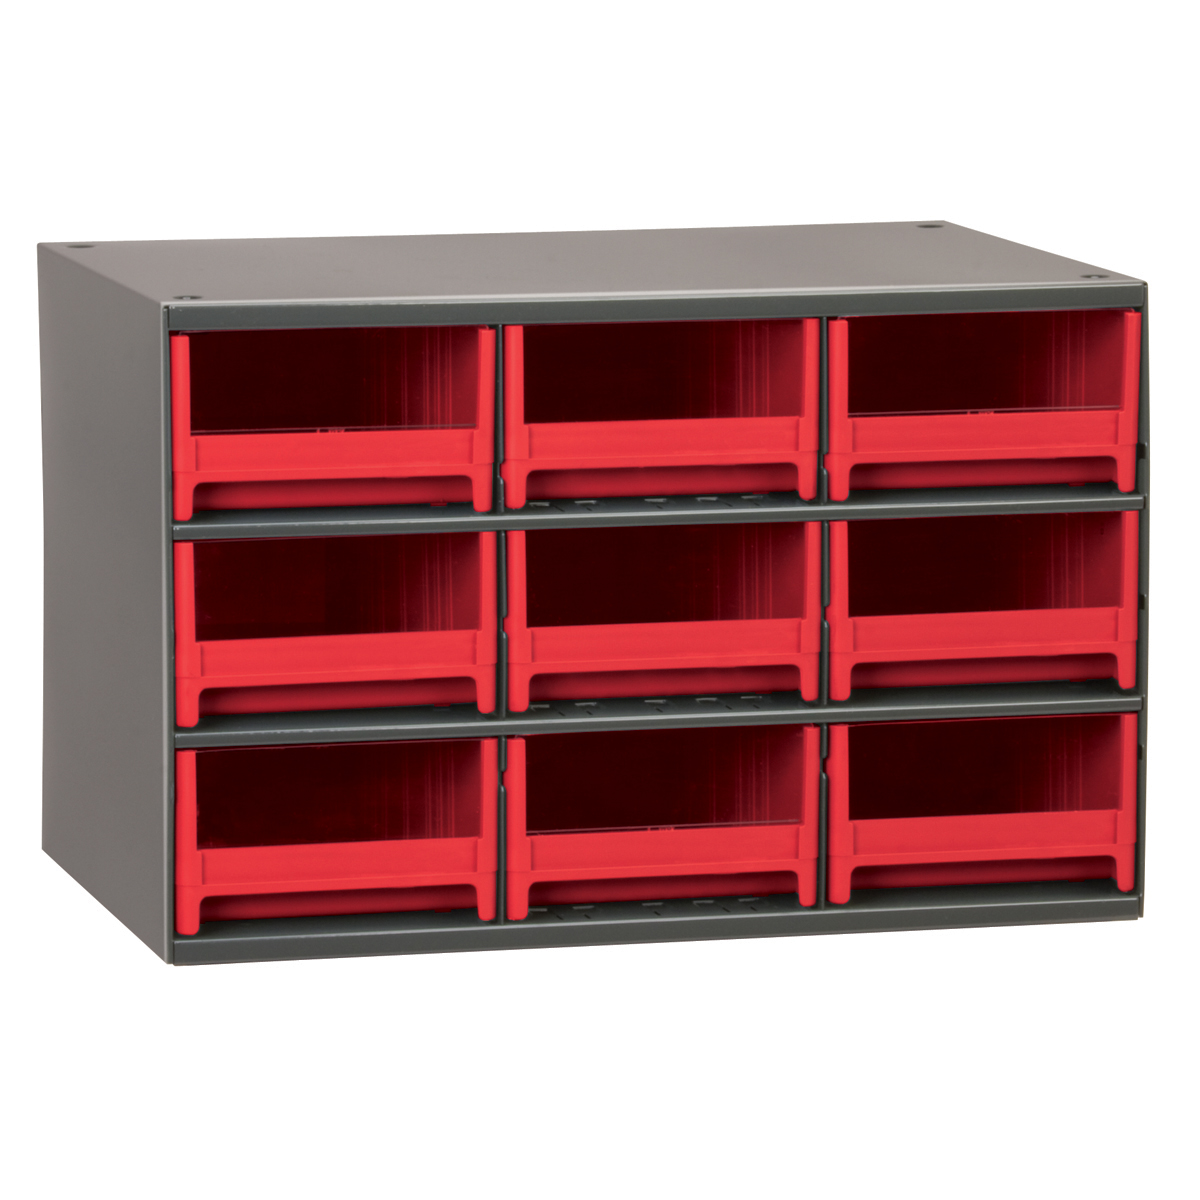 19-Series Steel Cabinet w/ 9 Drawers, Red (19909RED).  This item sold in carton quantities of 1.